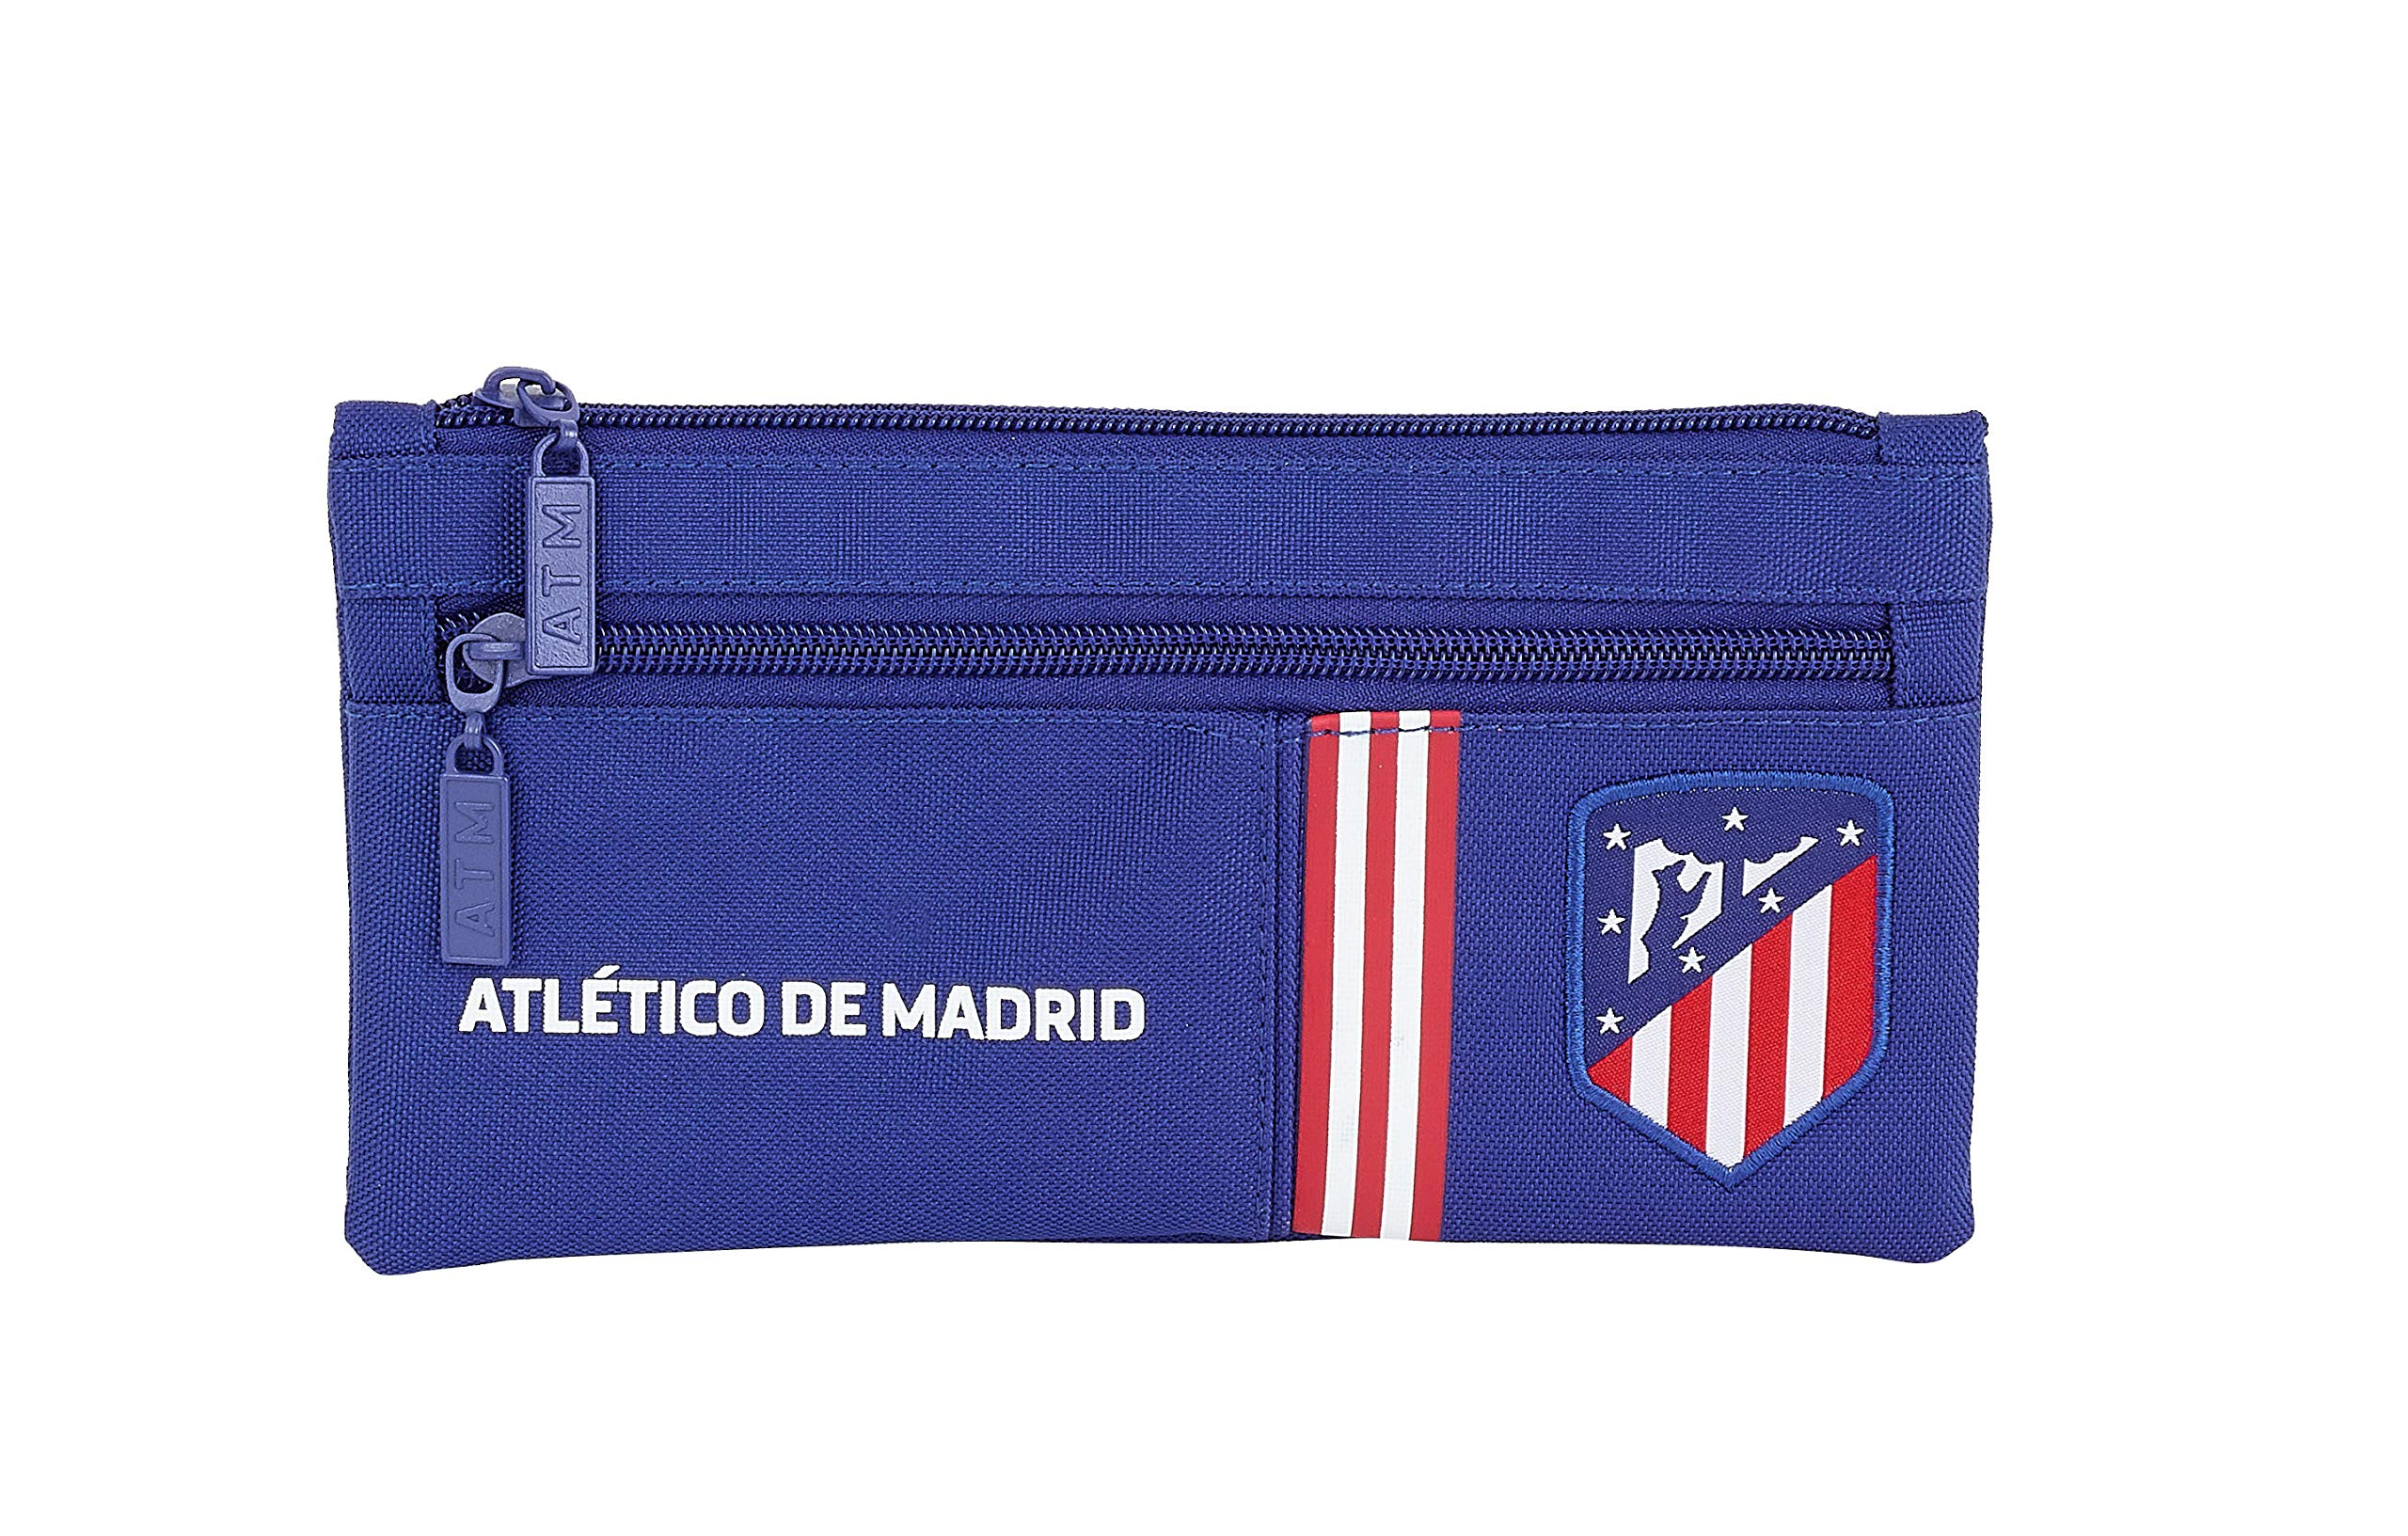 Atlético de Madrid «In Blue» Oficial Estuche Doble Cremallera Escolar 230x110mm